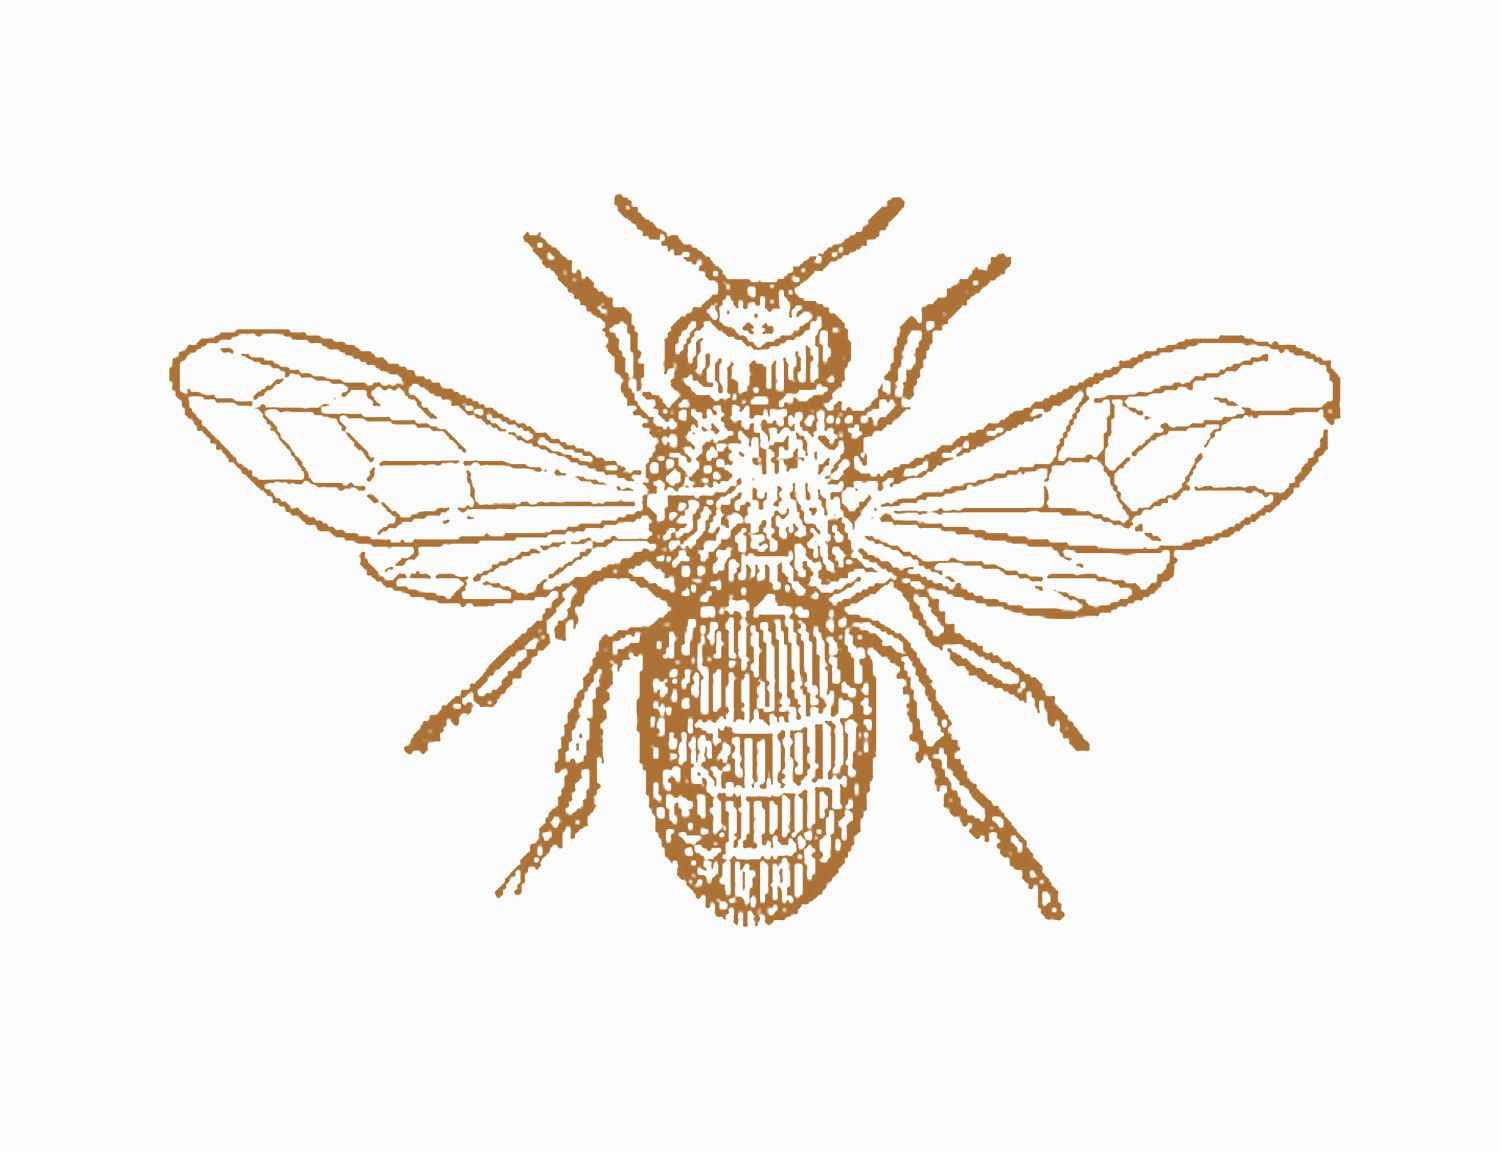 1500x1152 Honey Bee Most Honey Bees Are Reddish Brown And Black,